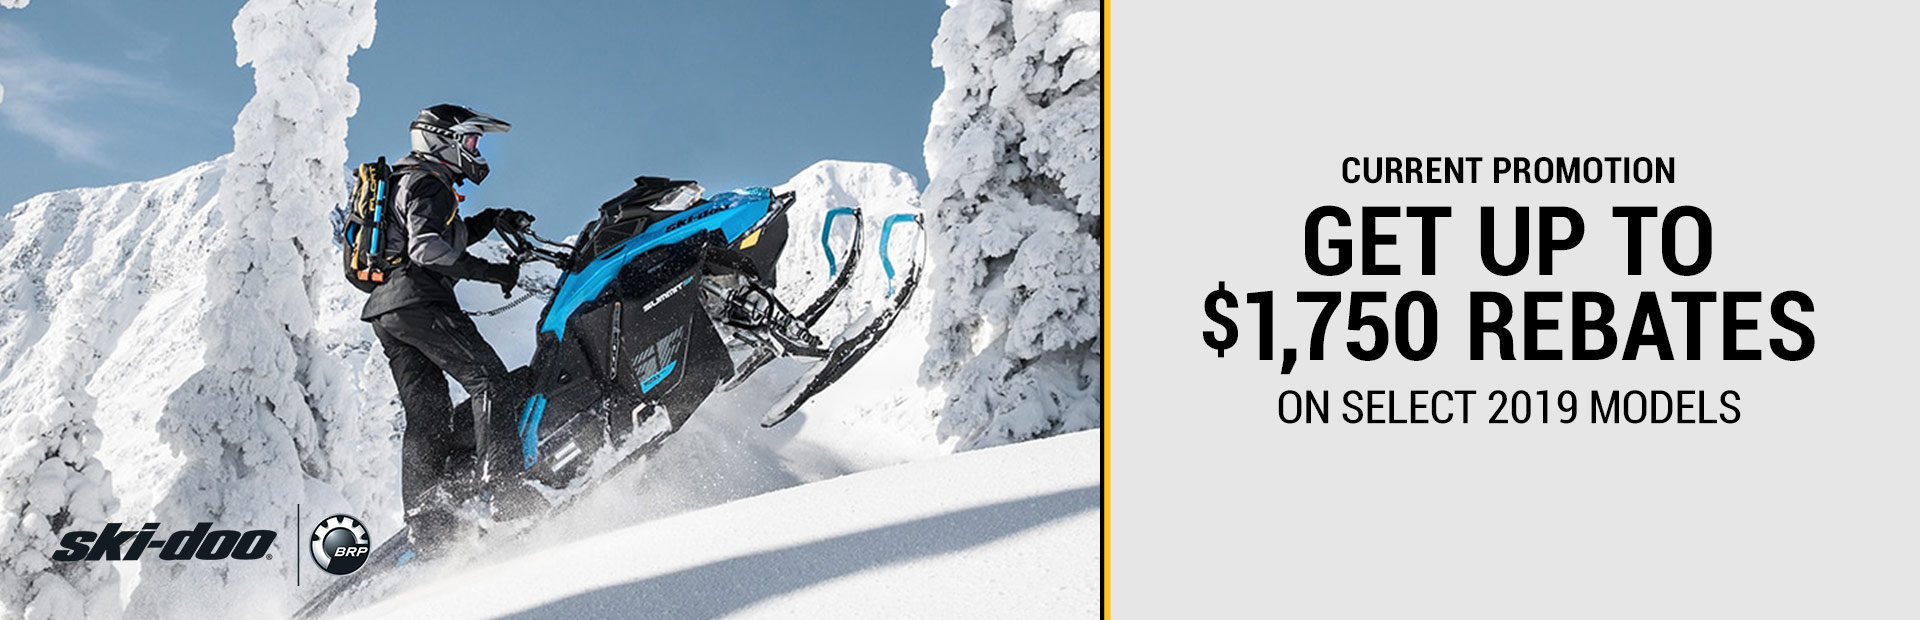 Ski-Doo: Current Promotion